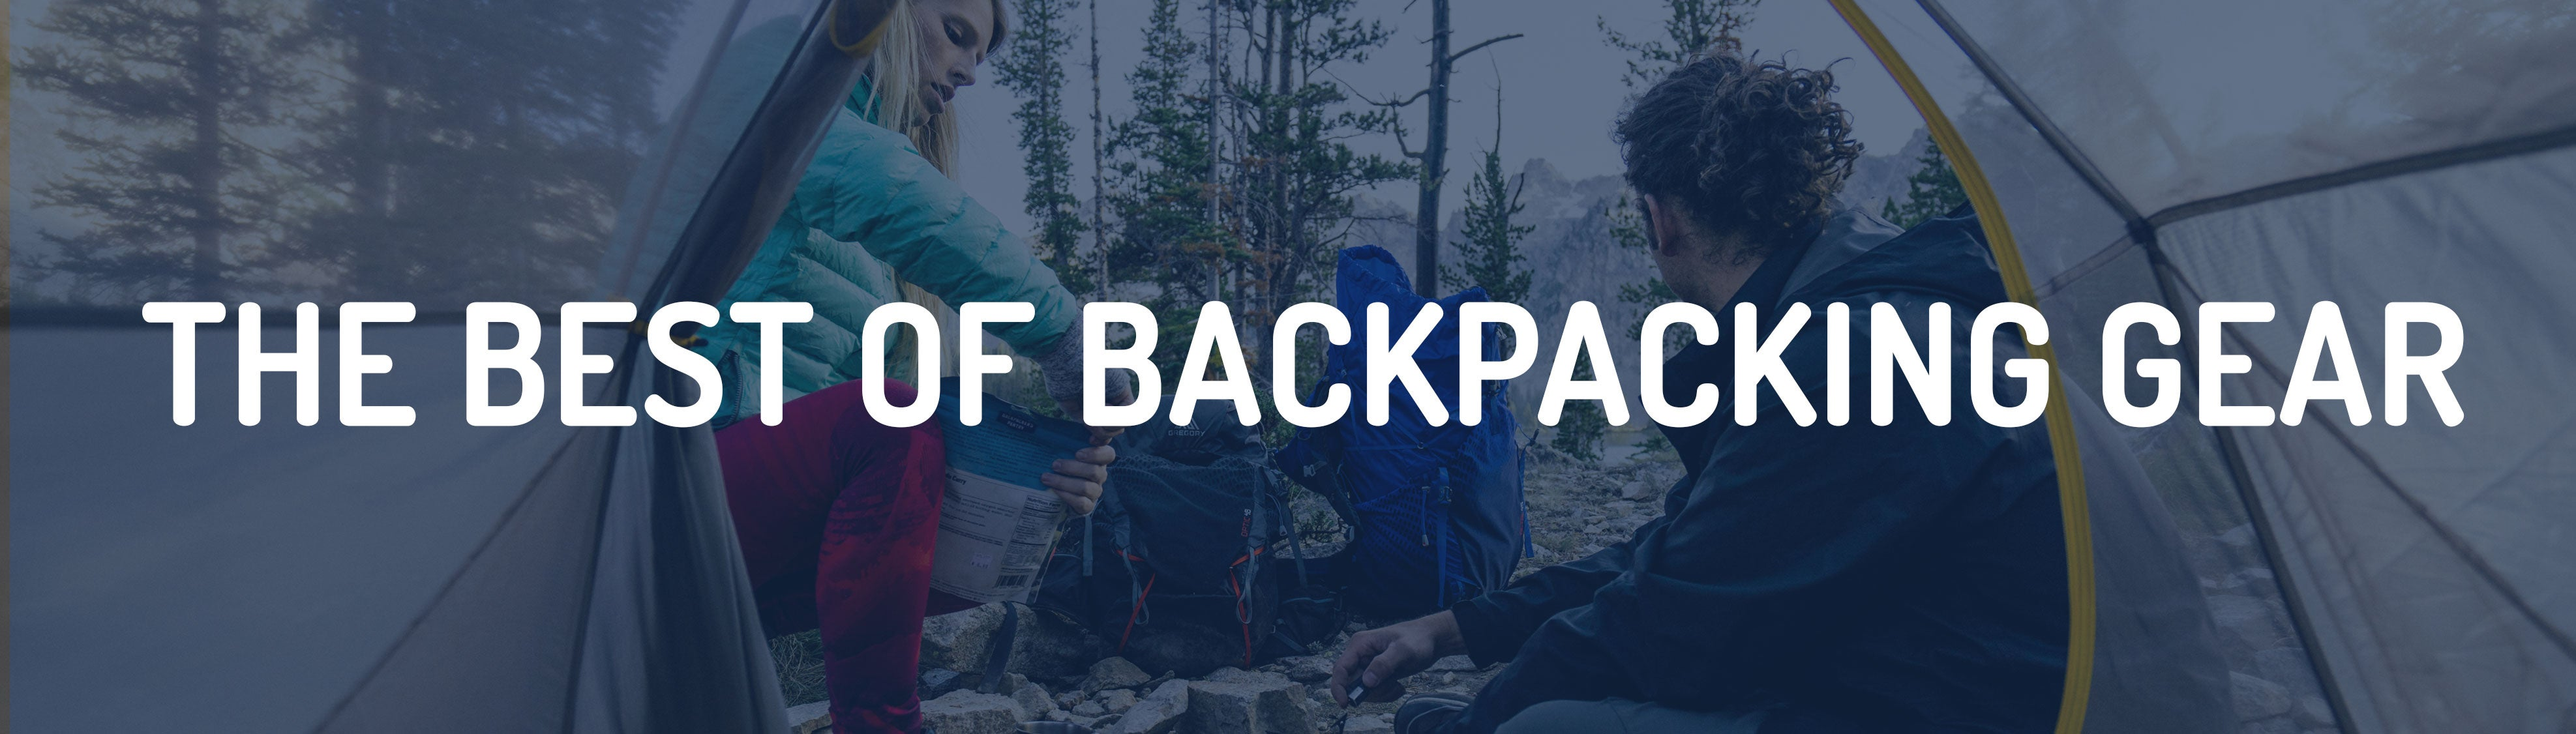 gifts for backpackers banner, text: best of backpacking gear